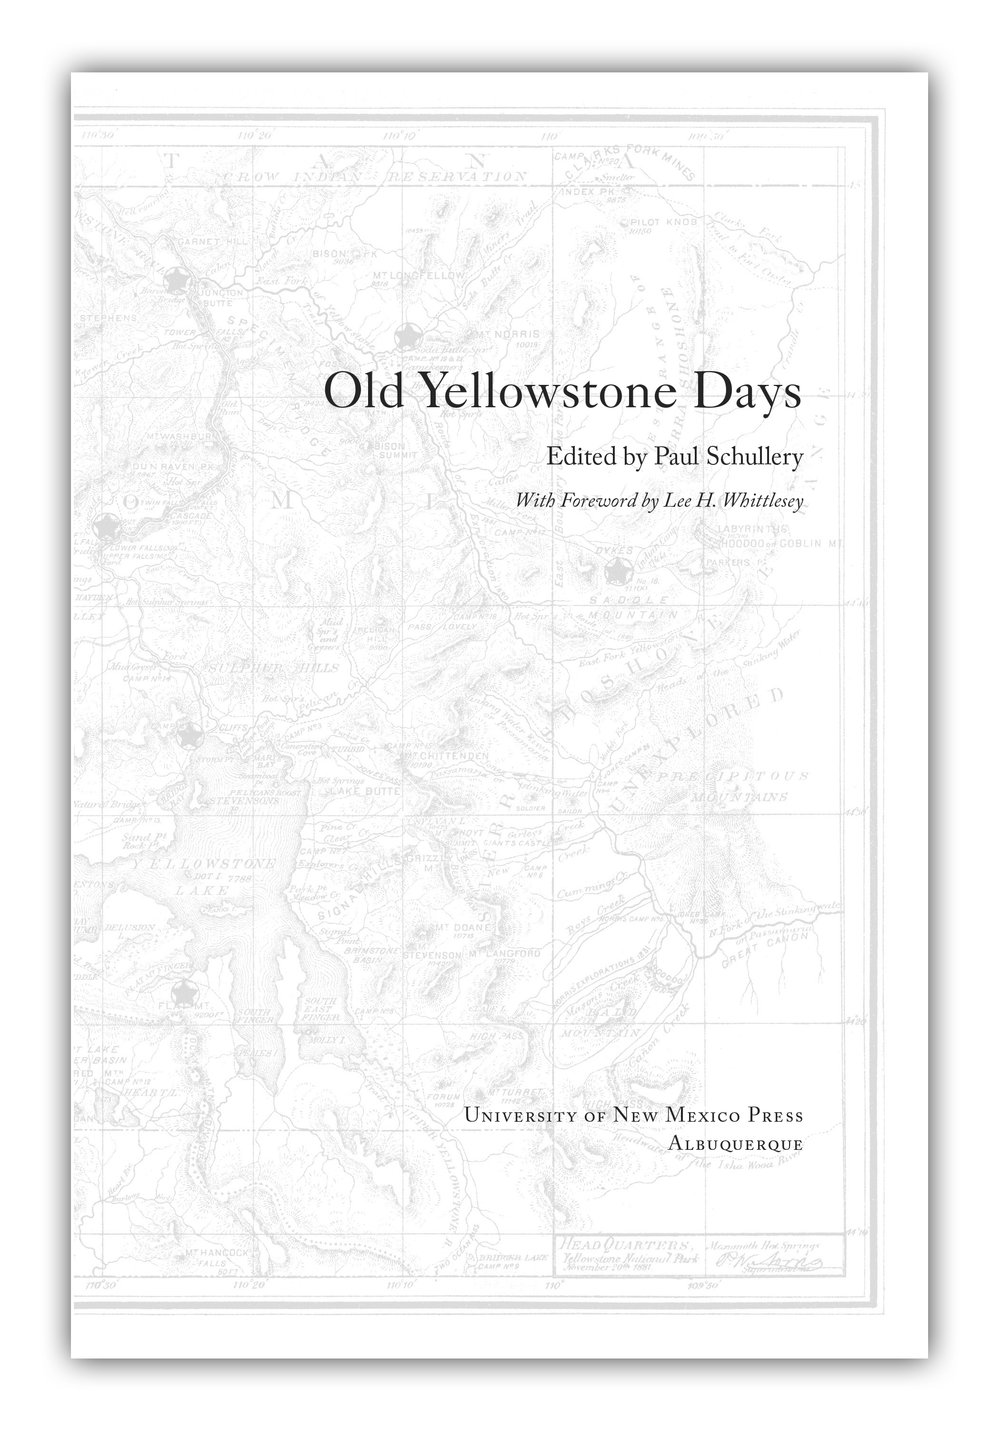 OldYellowstone_Cover.jpg